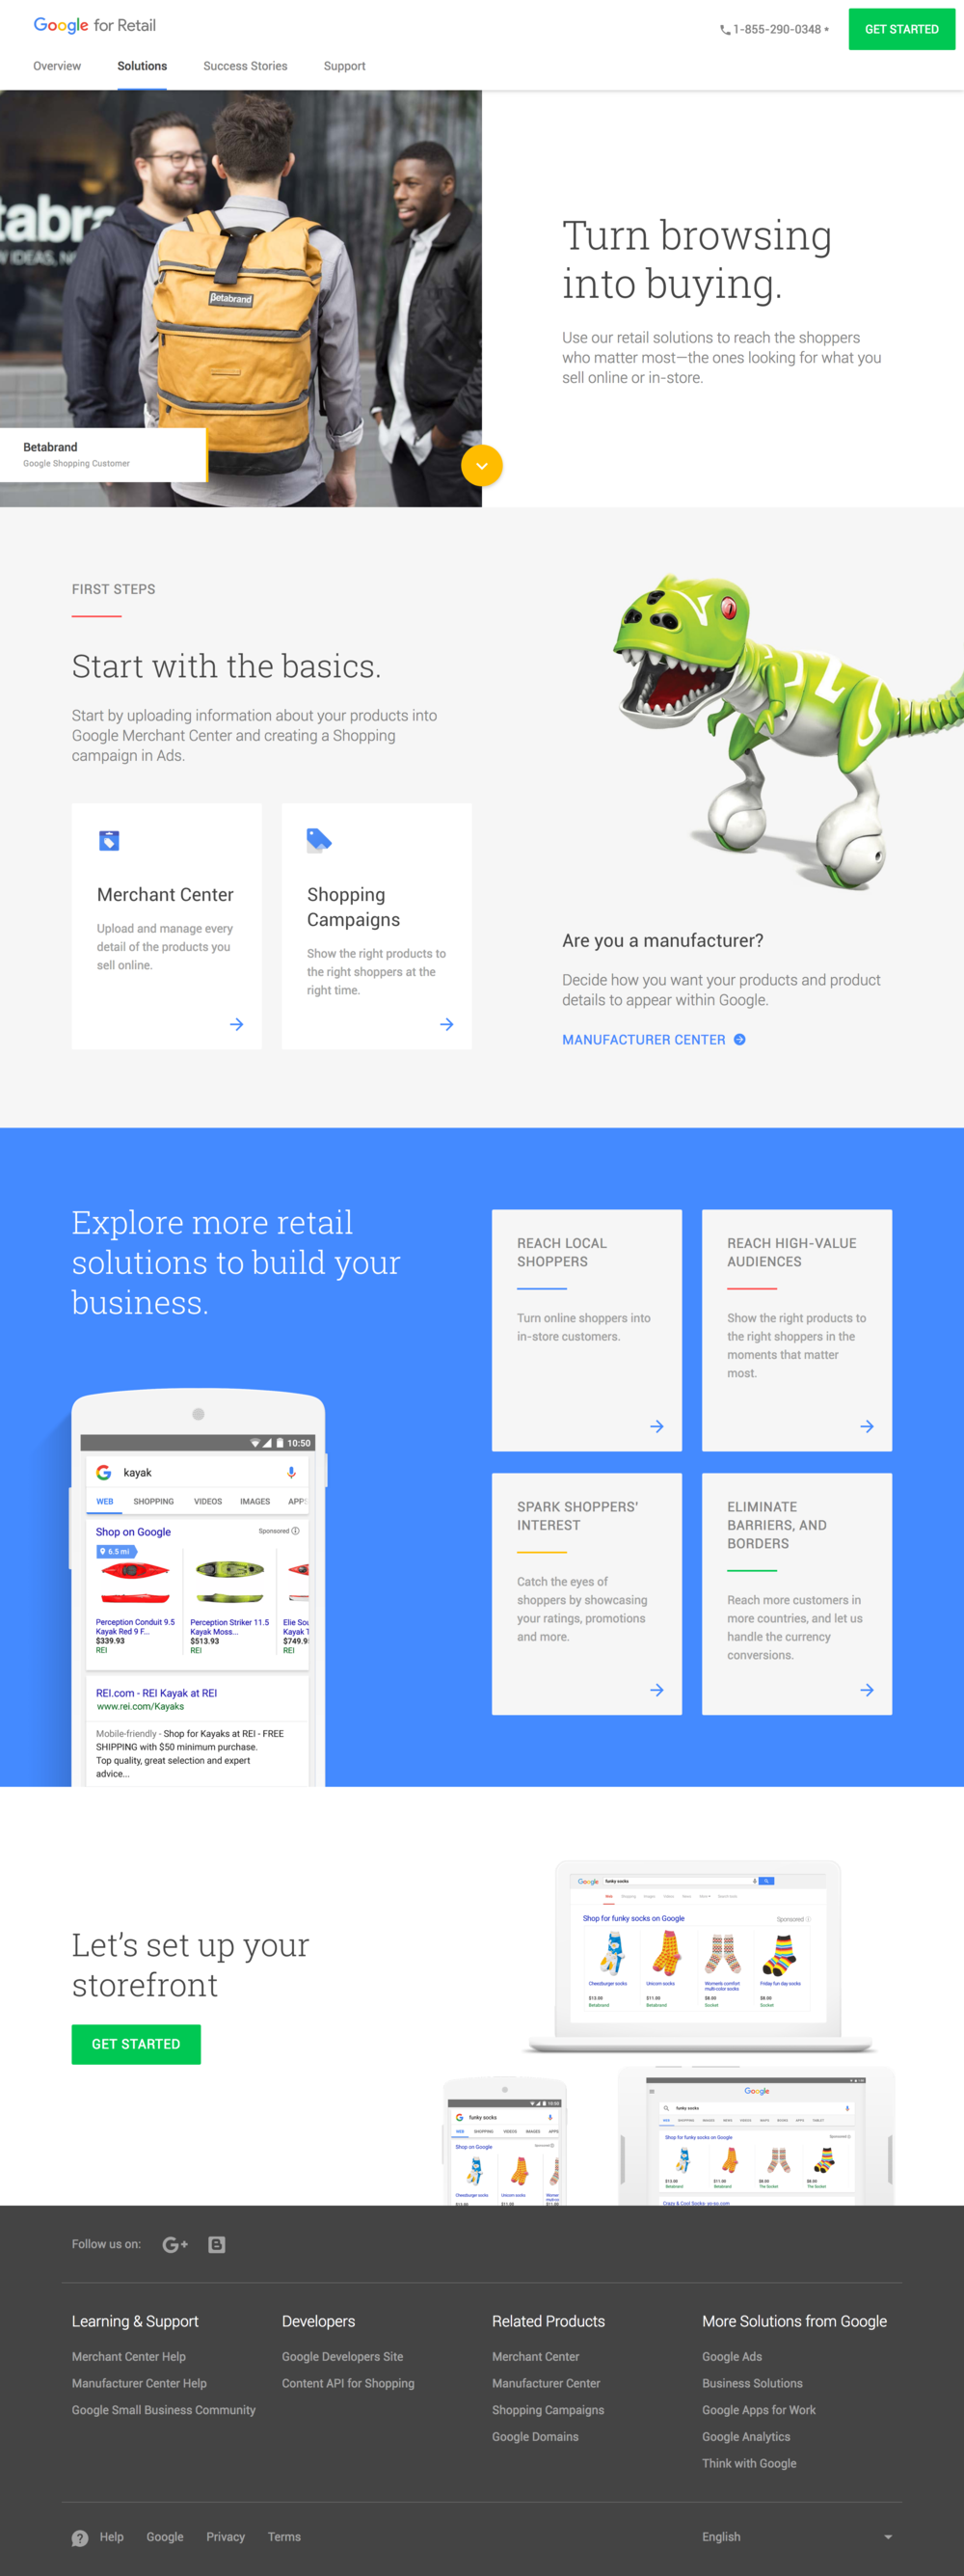 screencapture-google-retail-solutions-2018-10-12-15_26_53.png